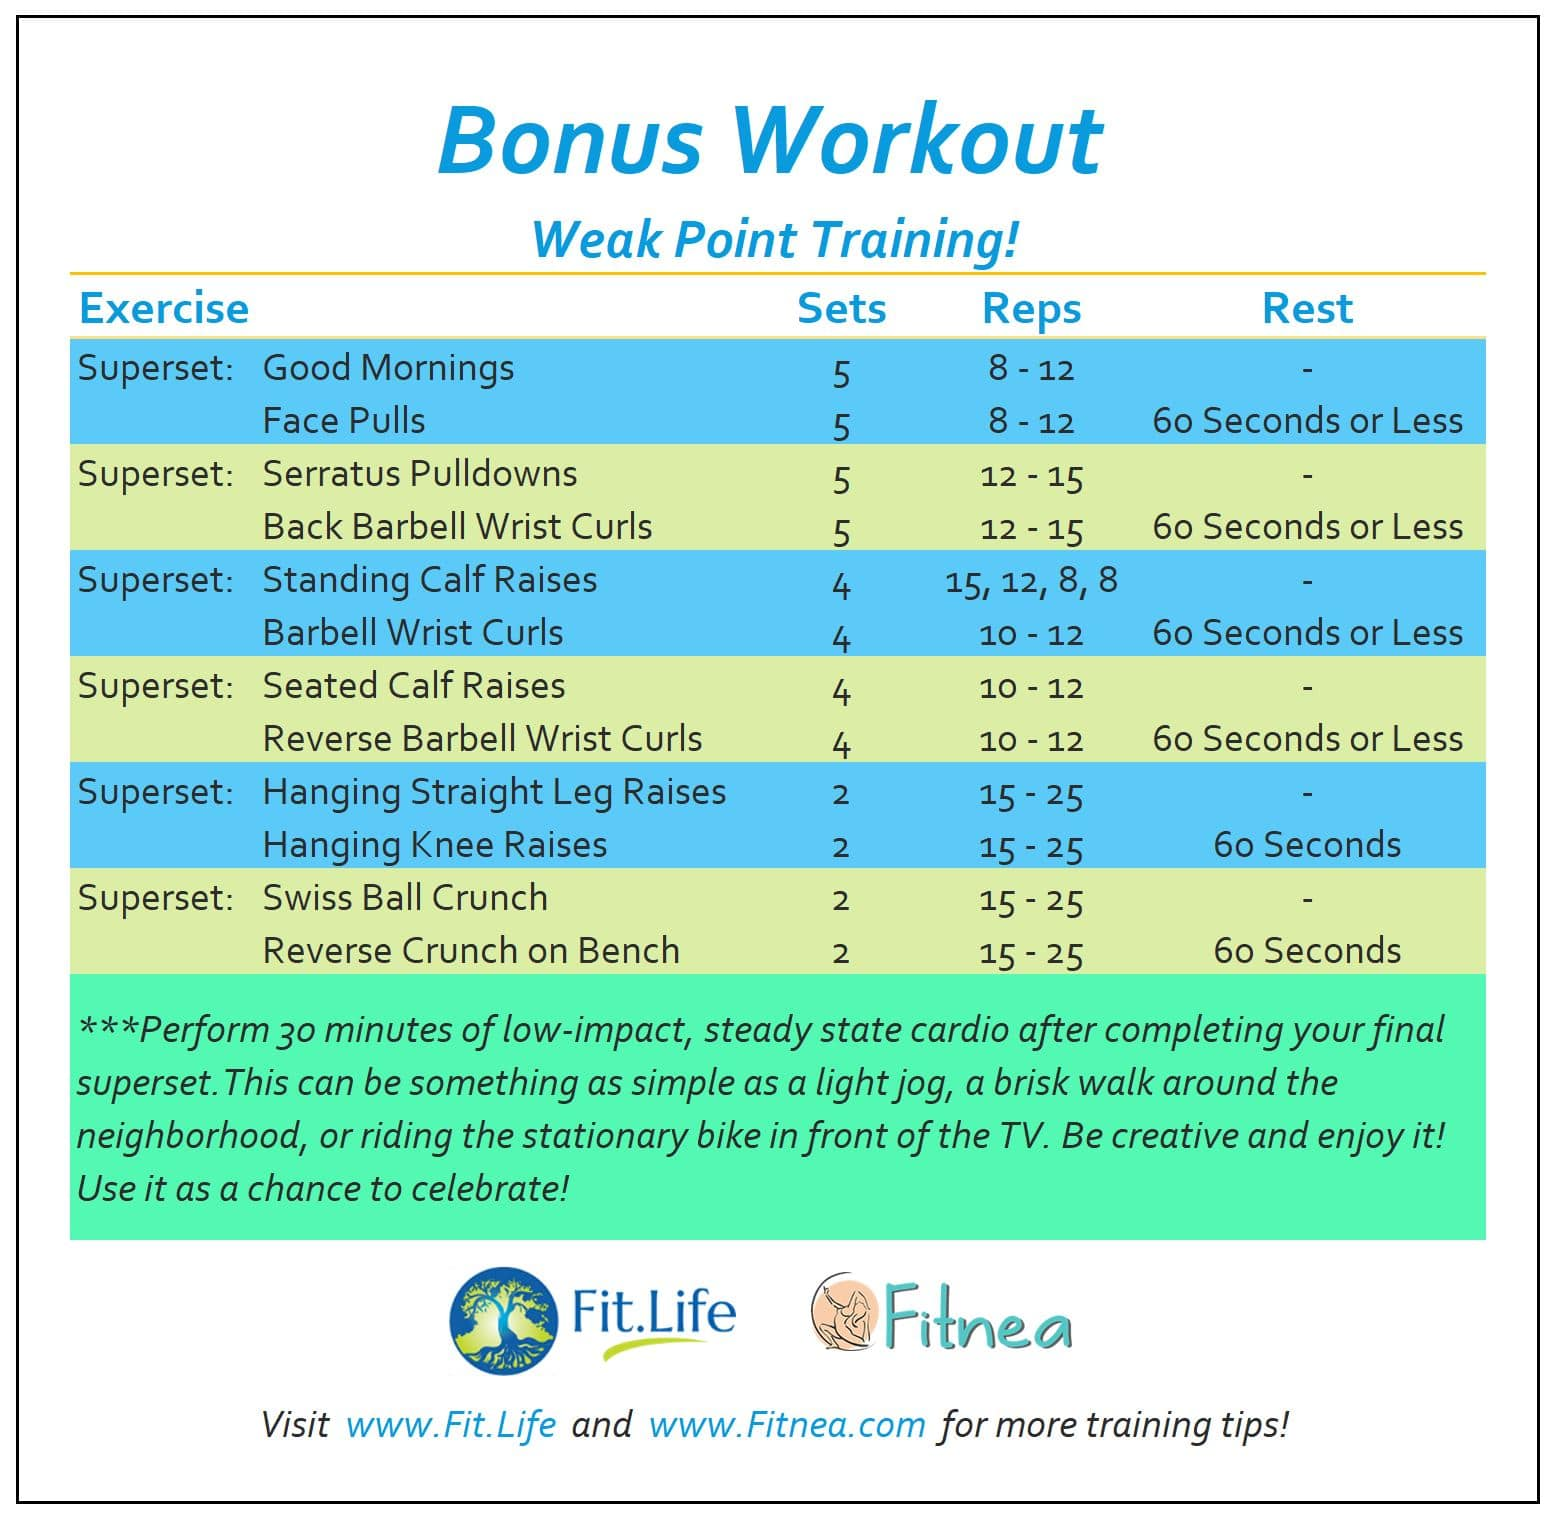 Bonus Workout